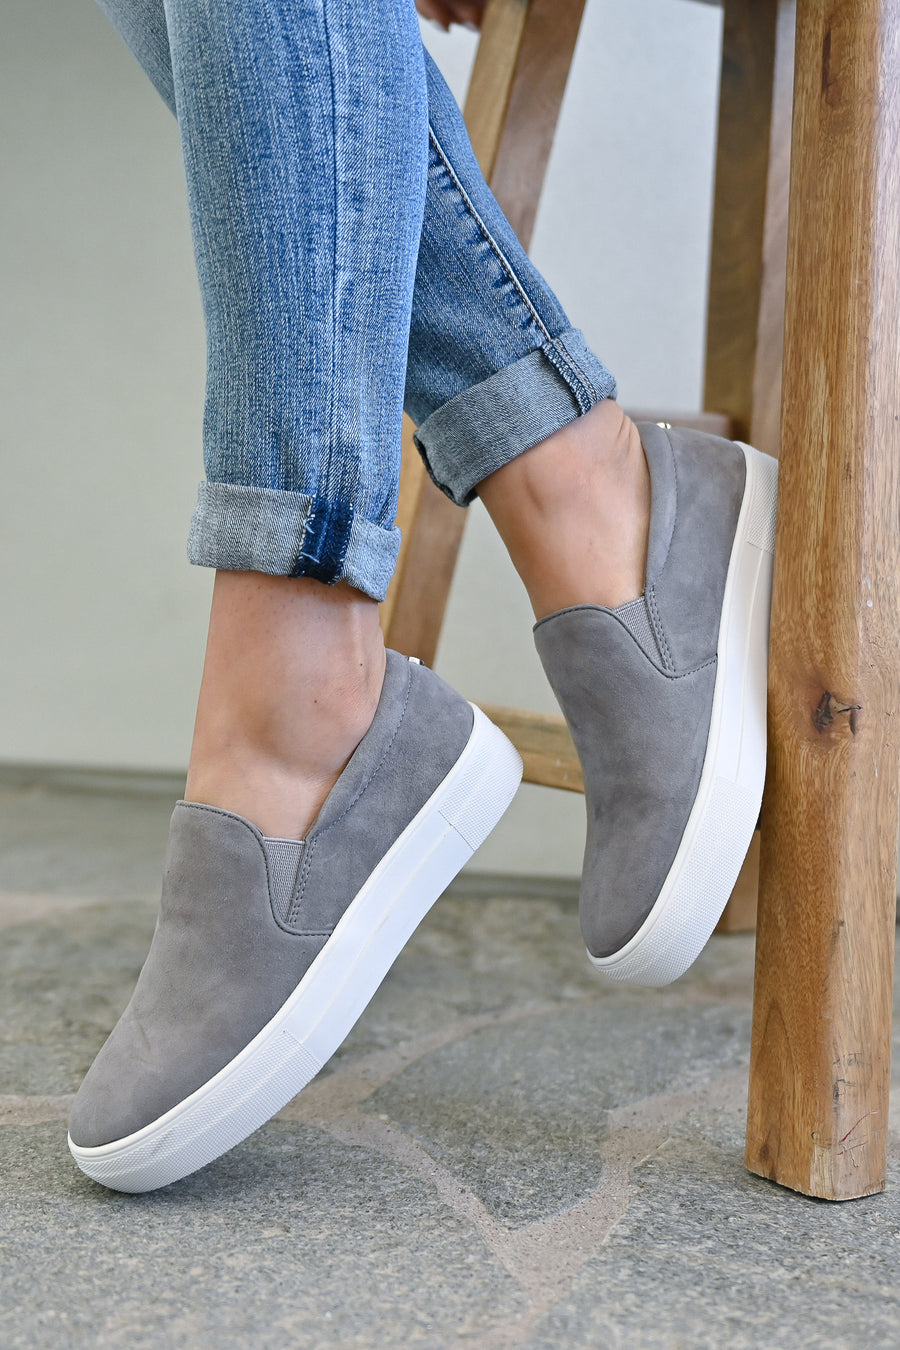 STEVE MADDEN Chris's Favorite Sneakers - Grey womens trendy shoes closet candy side